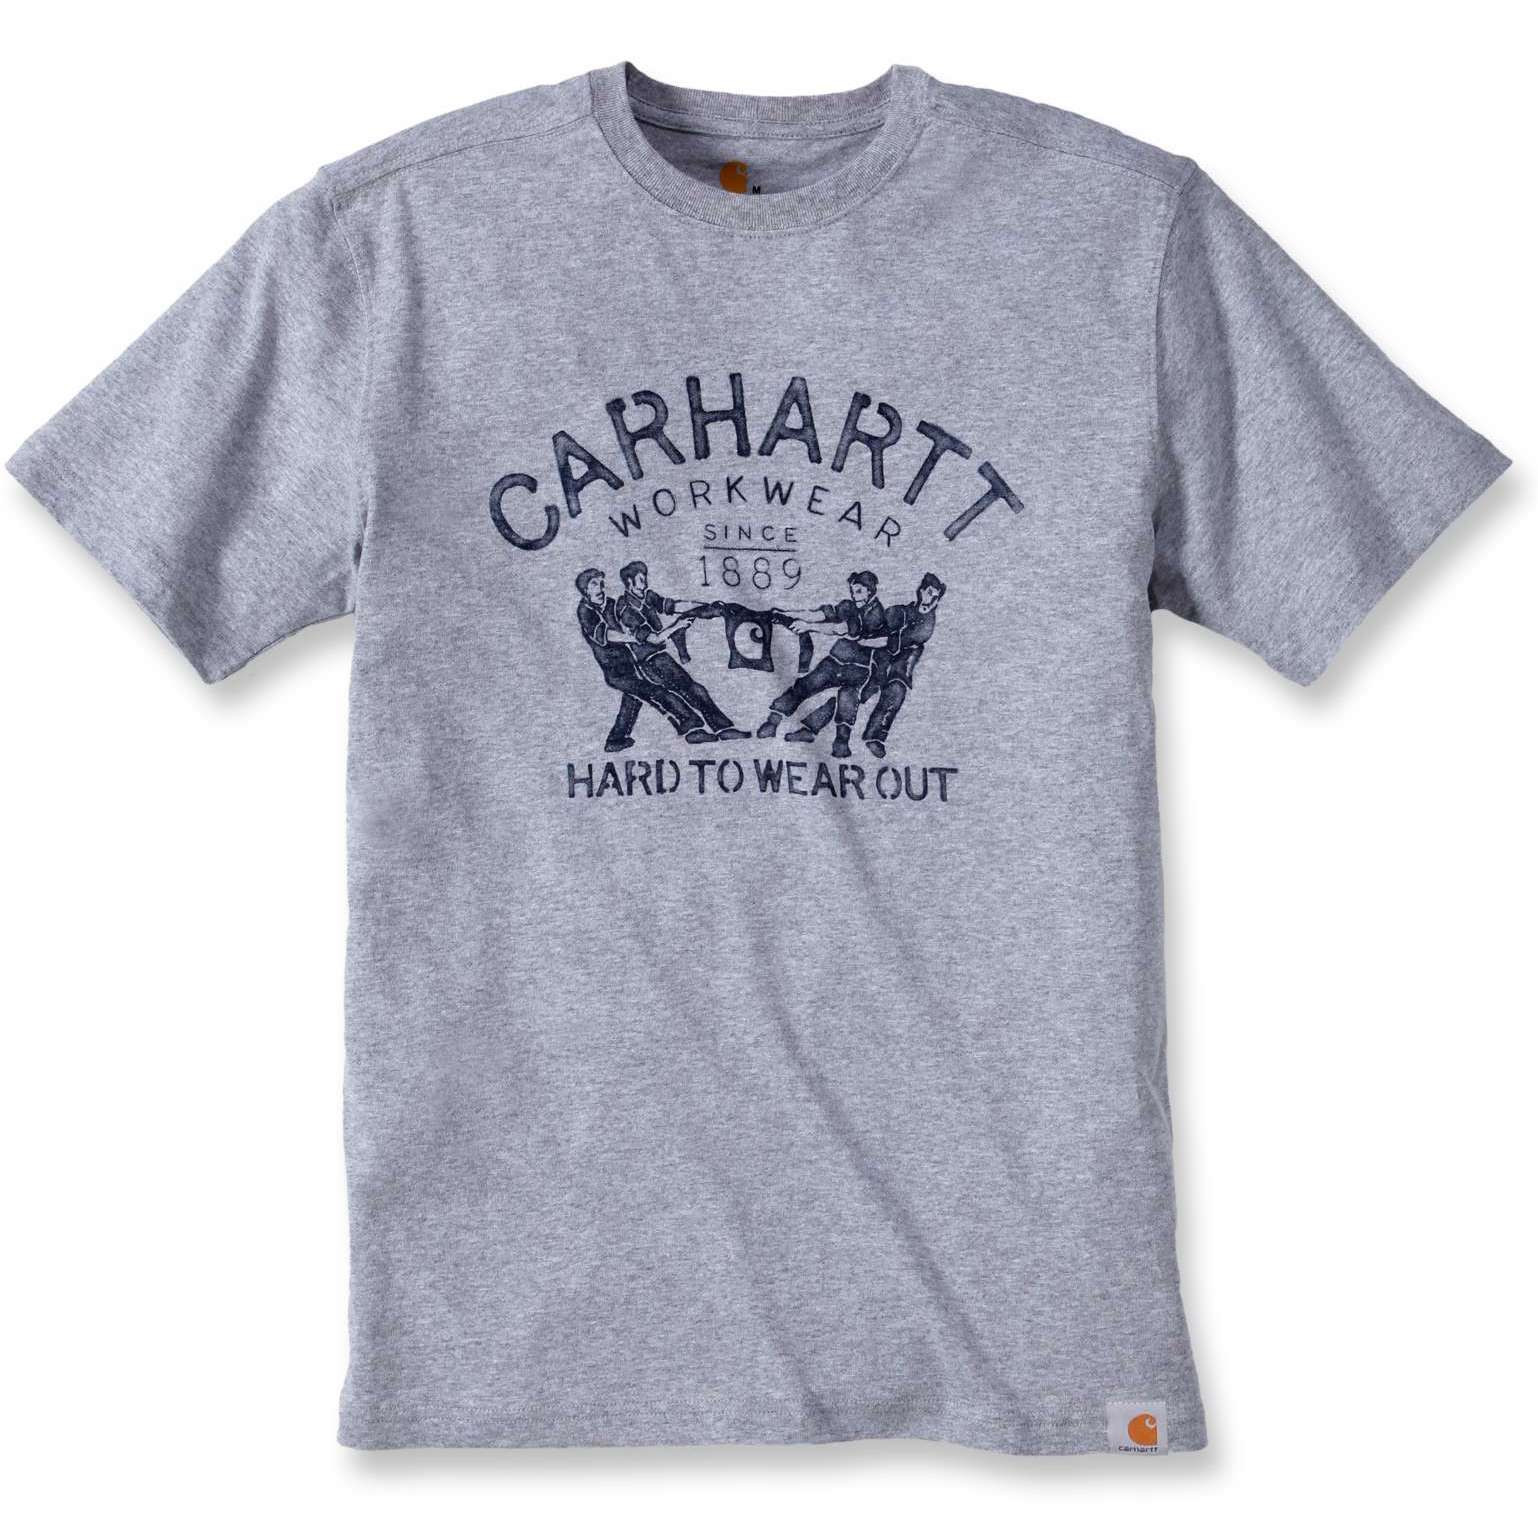 Футболка Carhartt Hard To Wear Out Graphic T-Shirt S/S - 102097 (Heather Grey, XS)